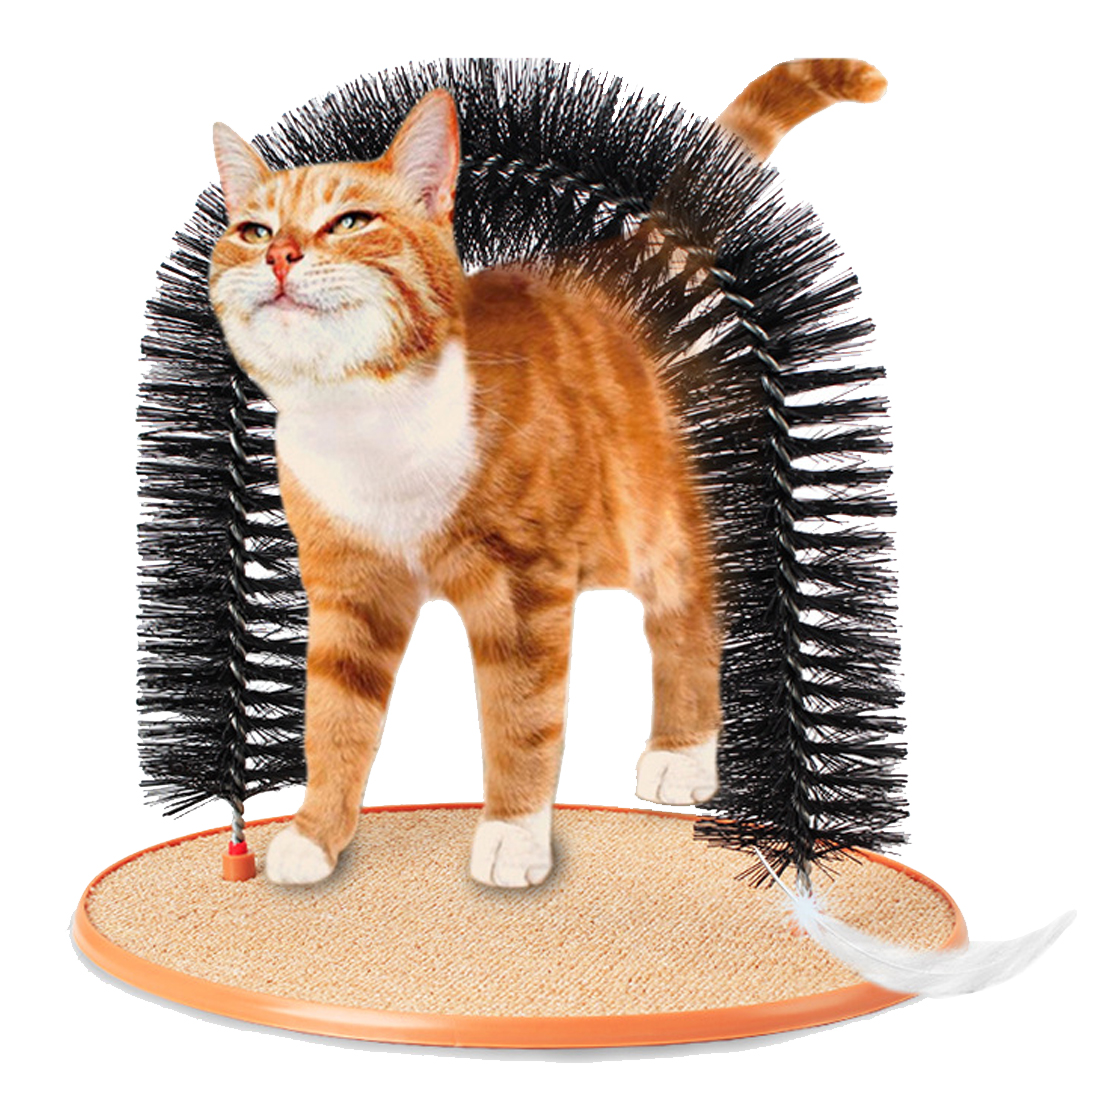 Pet Products Good Arch Pet Cat Self Groomer With Round Fleece Base Cat Toy Brush Toys For Pets Scratching Devices